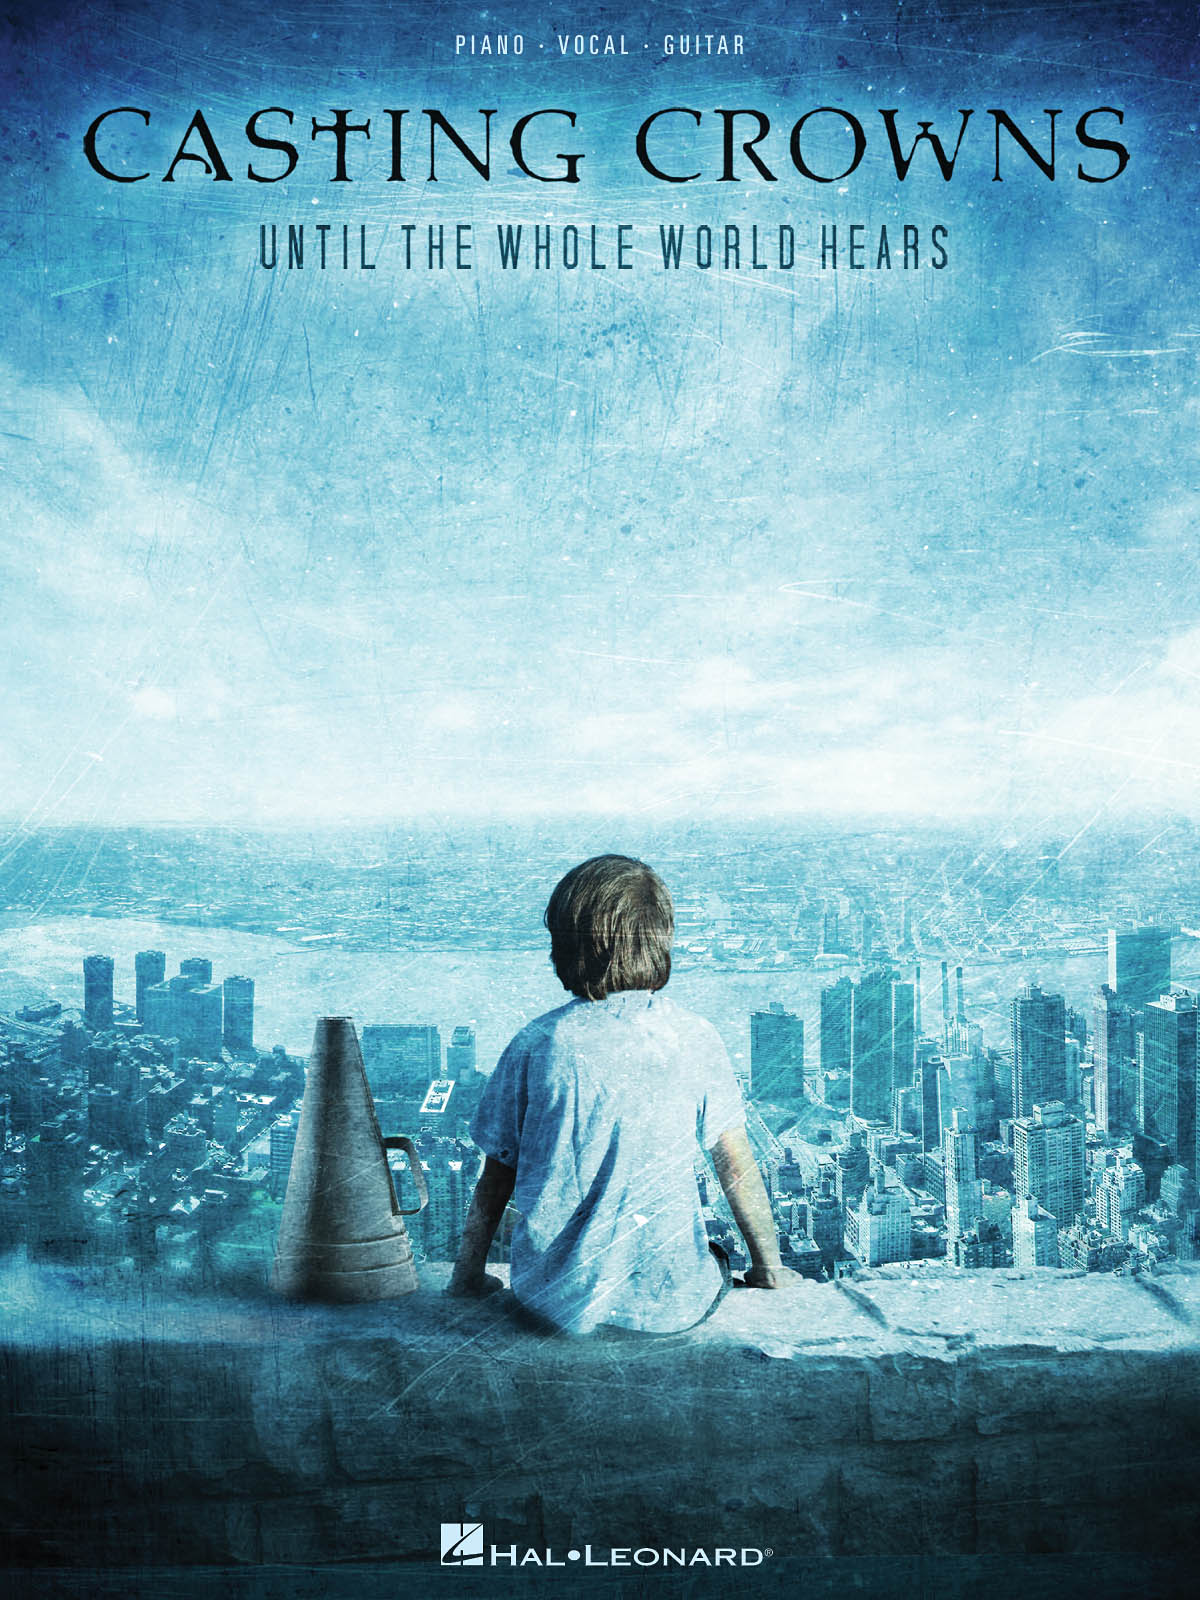 Casting Crowns: Casting Crowns - Until the Whole World Hears: Piano  Vocal and